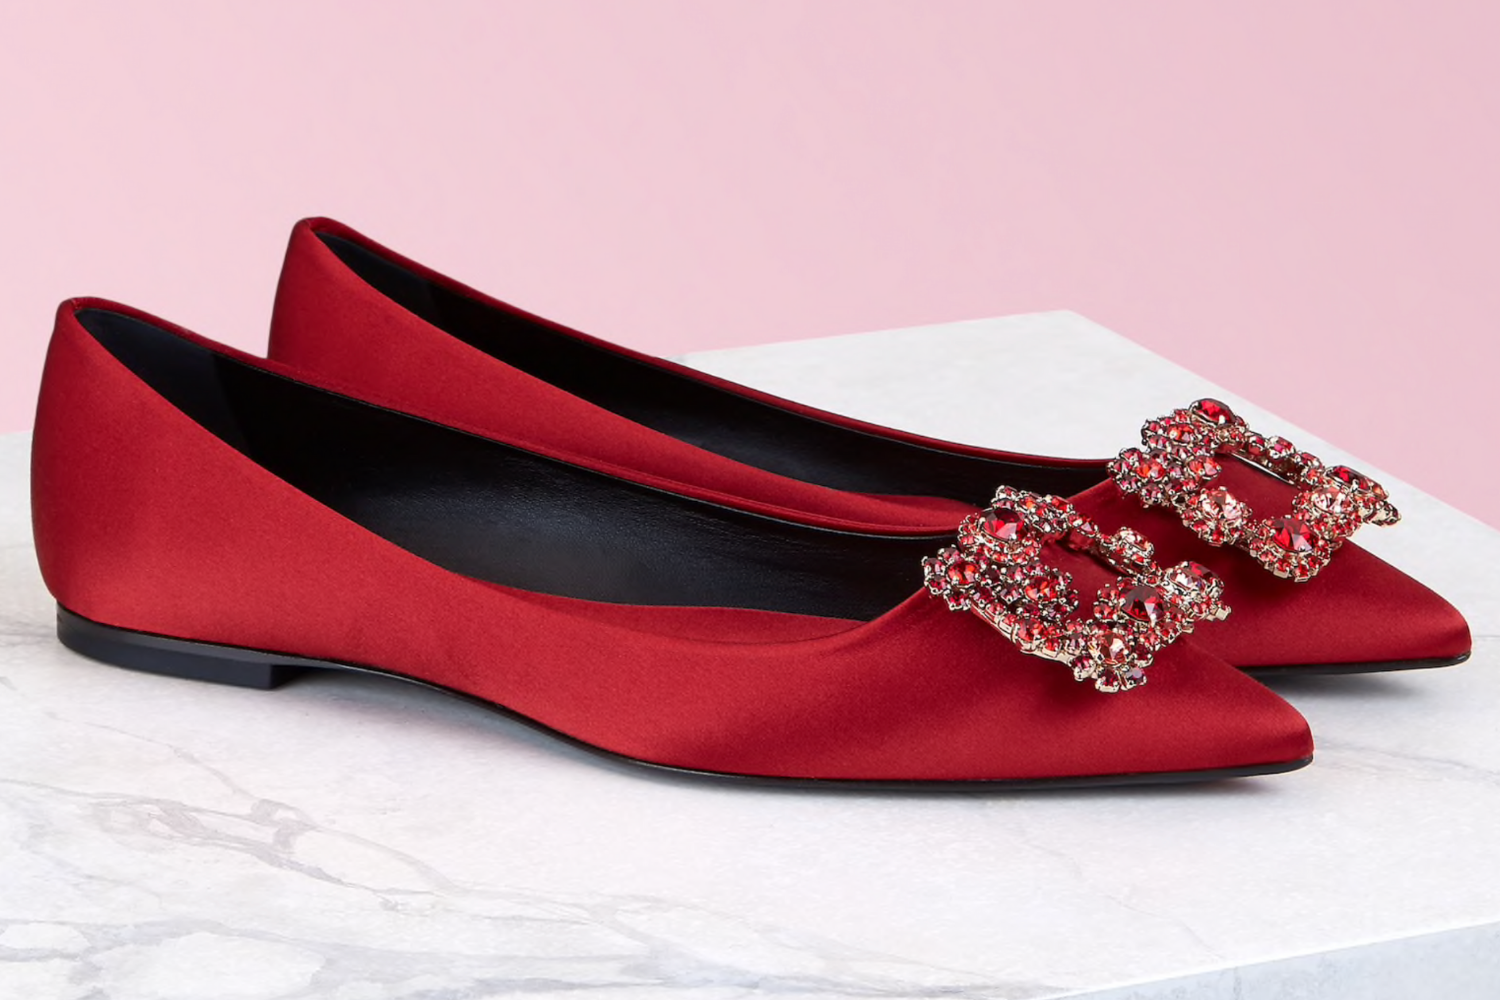 Valentino, Jimmy Choo, And More: 5 High